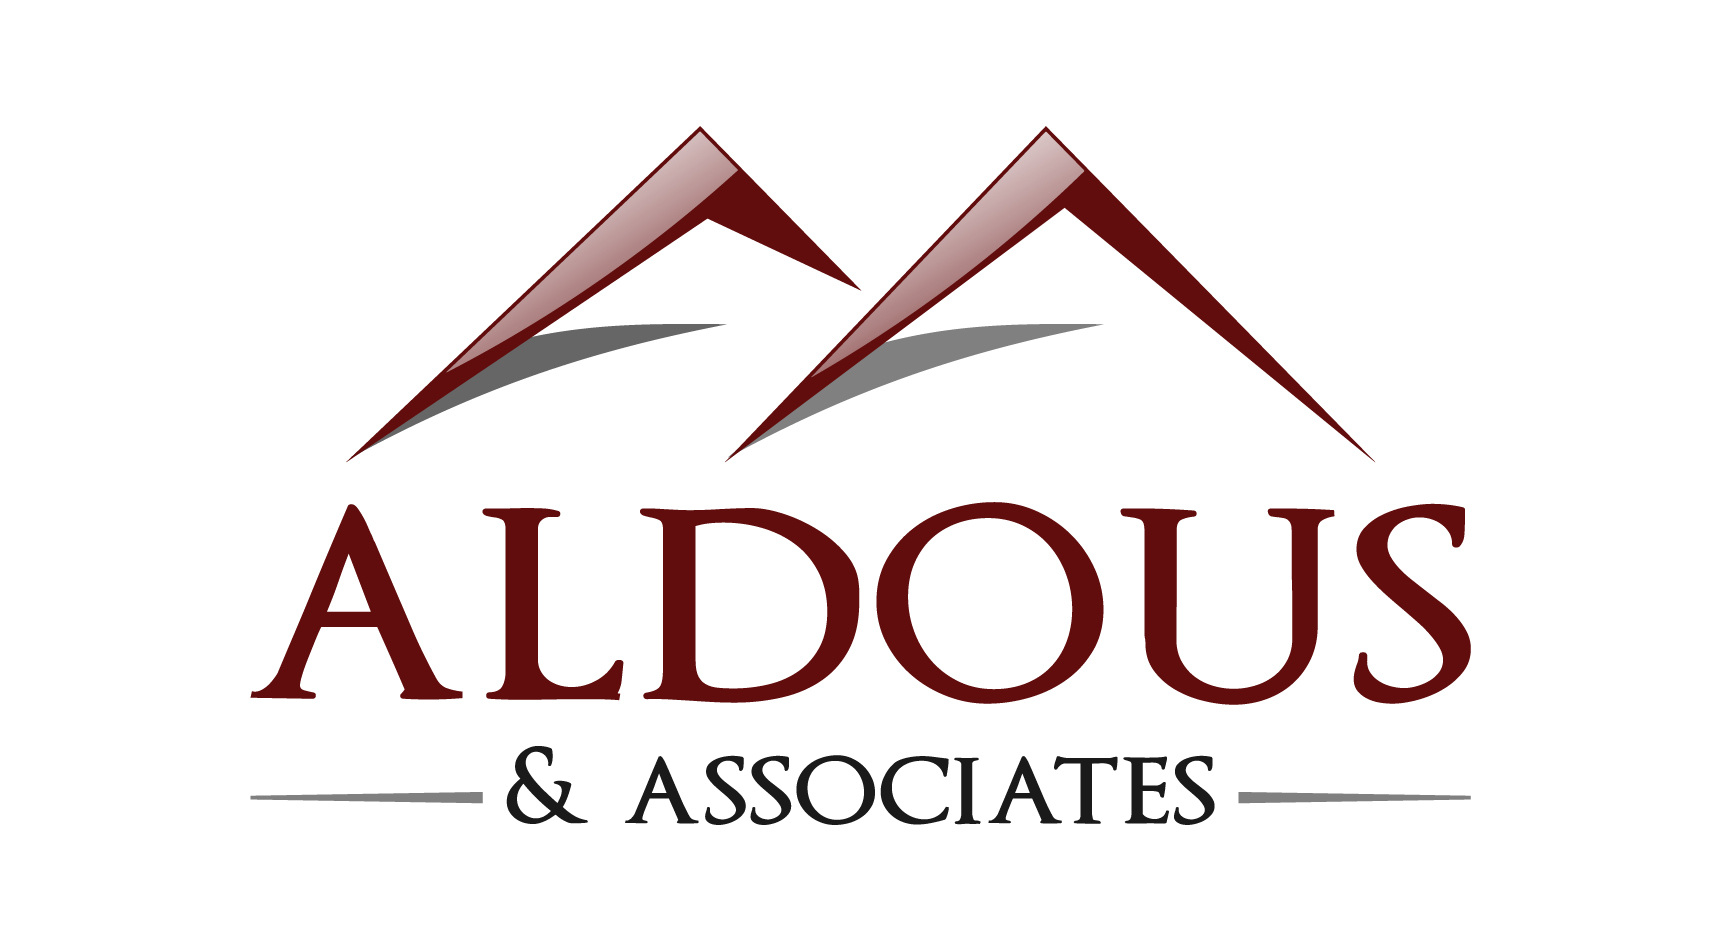 Aldous & Associates, PLLC